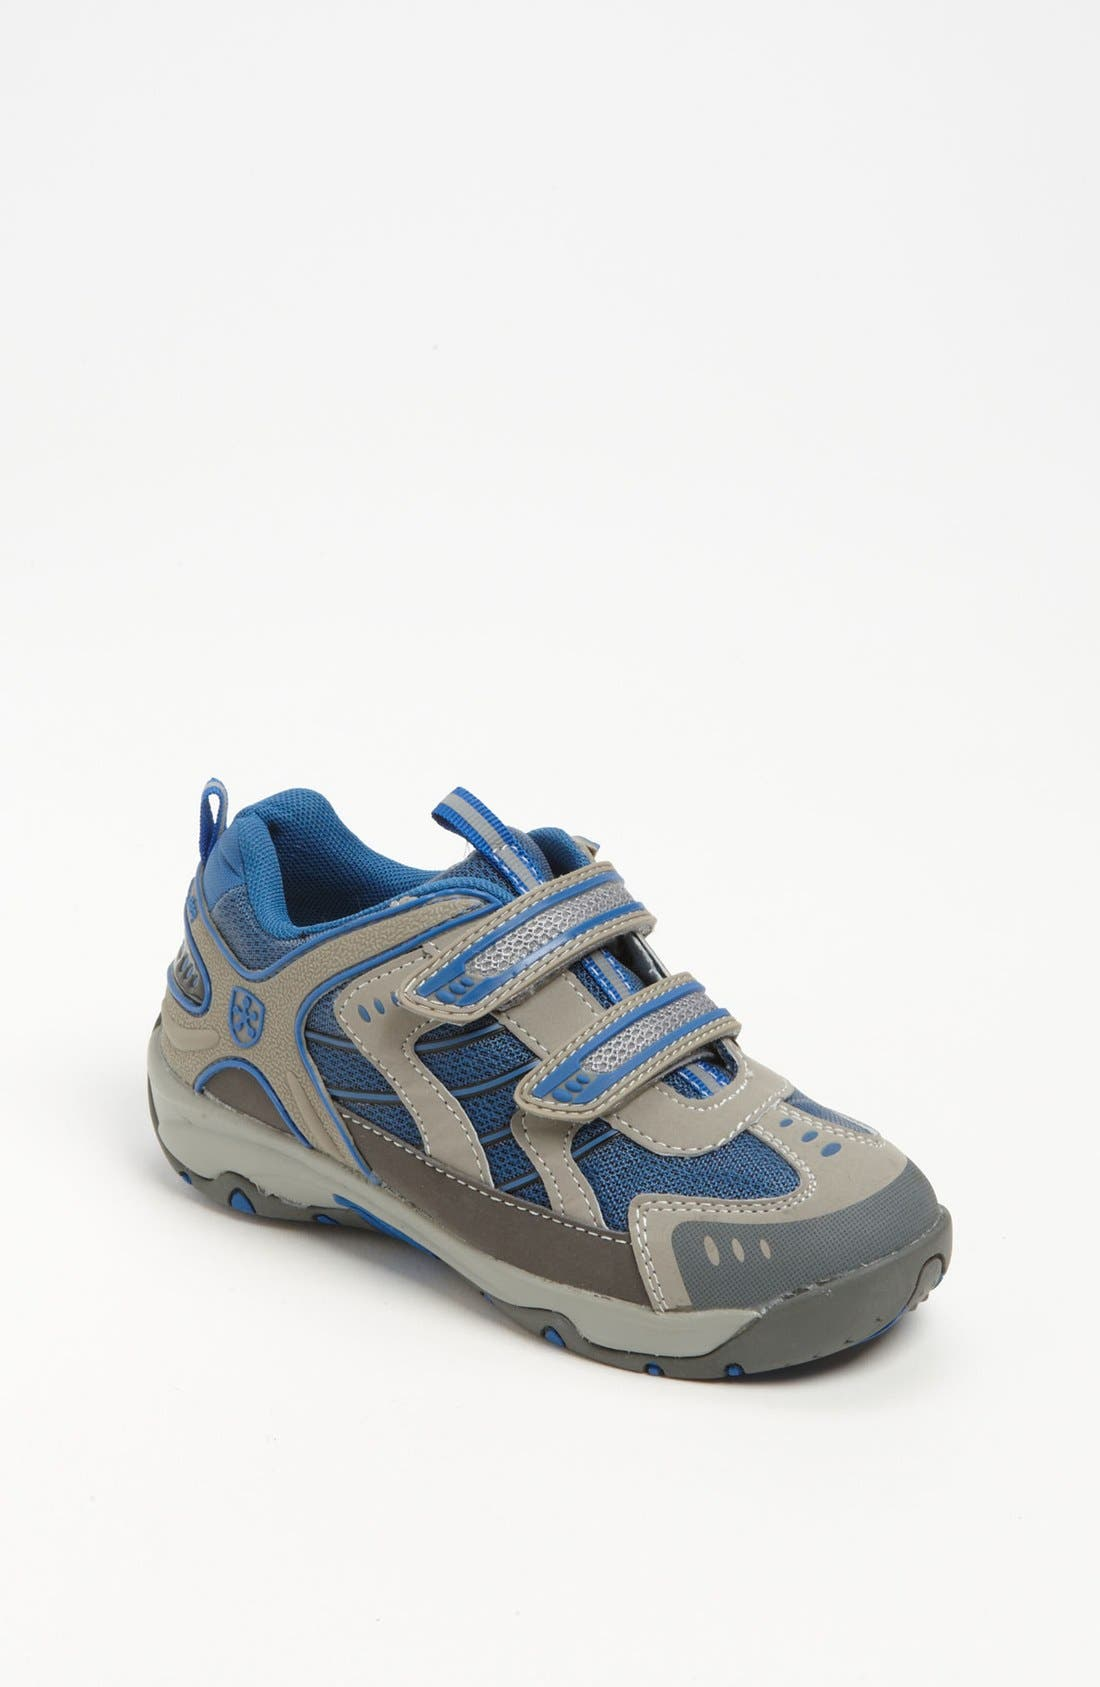 Alternate Image 1 Selected - Swissies 'Aramis II' Sneaker (Toddler & Little Kid)